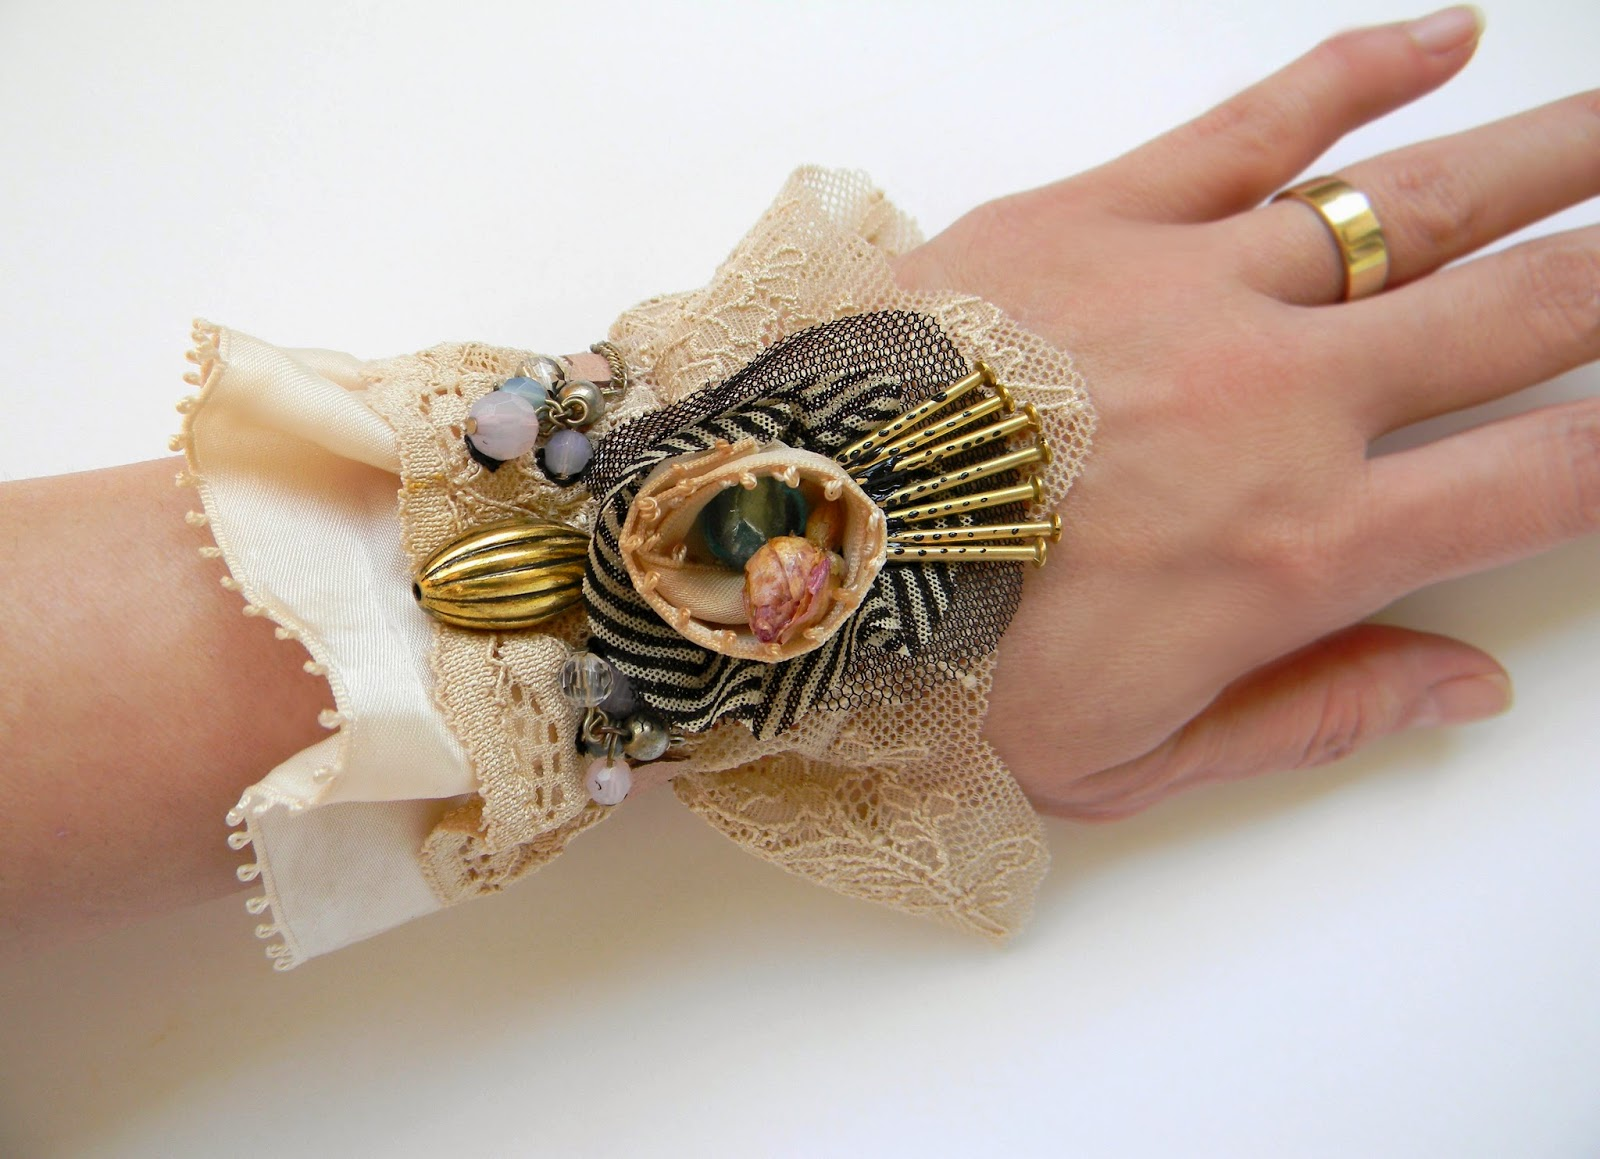 Eco Organic Wrist Cuff, Fiber Art Textile Bracelet with Rosebud and Glass Crystals Decor